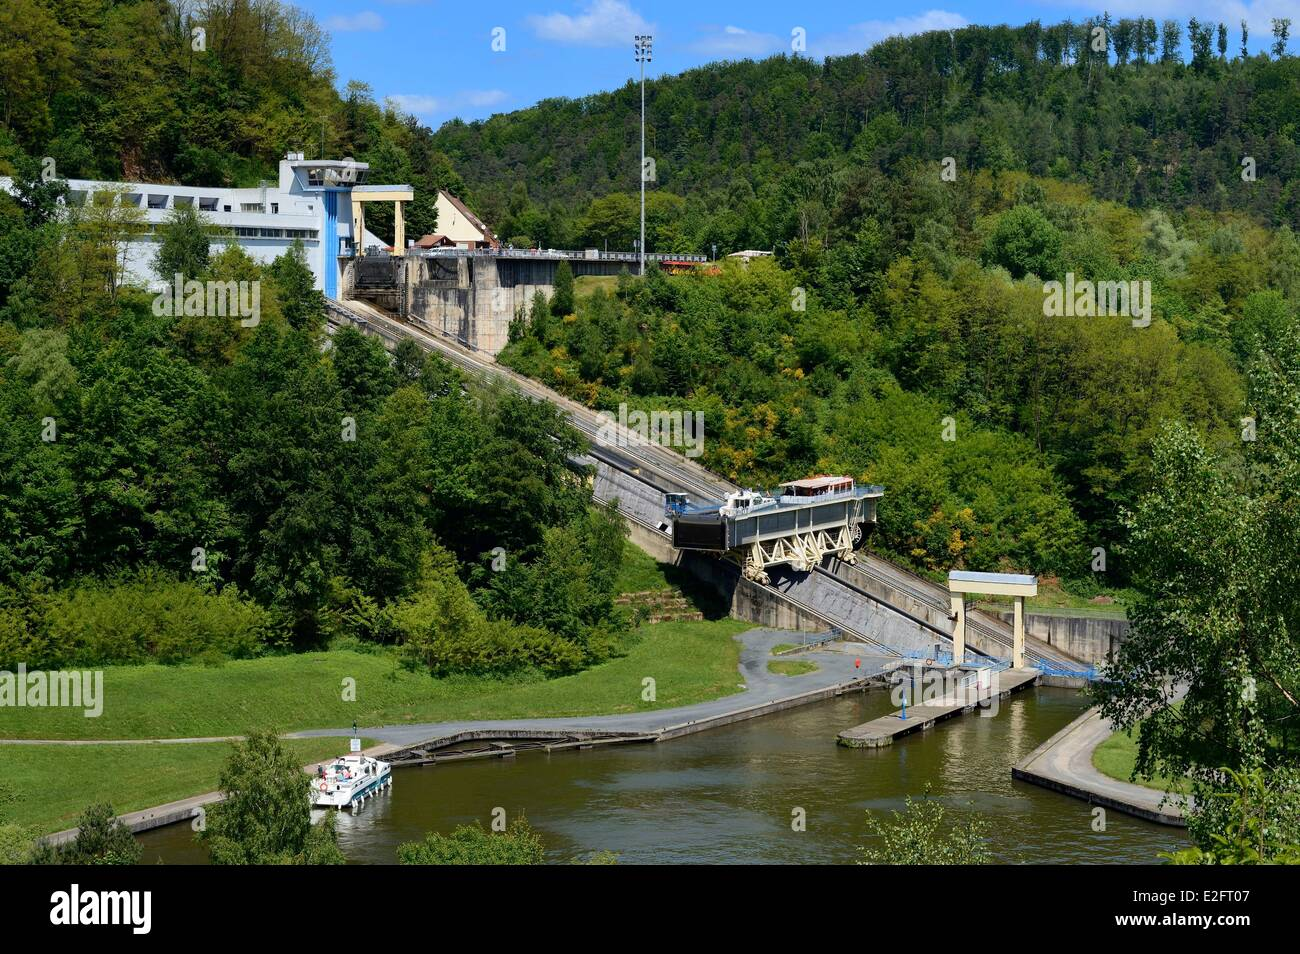 France moselle the saint louis arzviller inclined plane is - Plan incline de saint louis arzviller ...